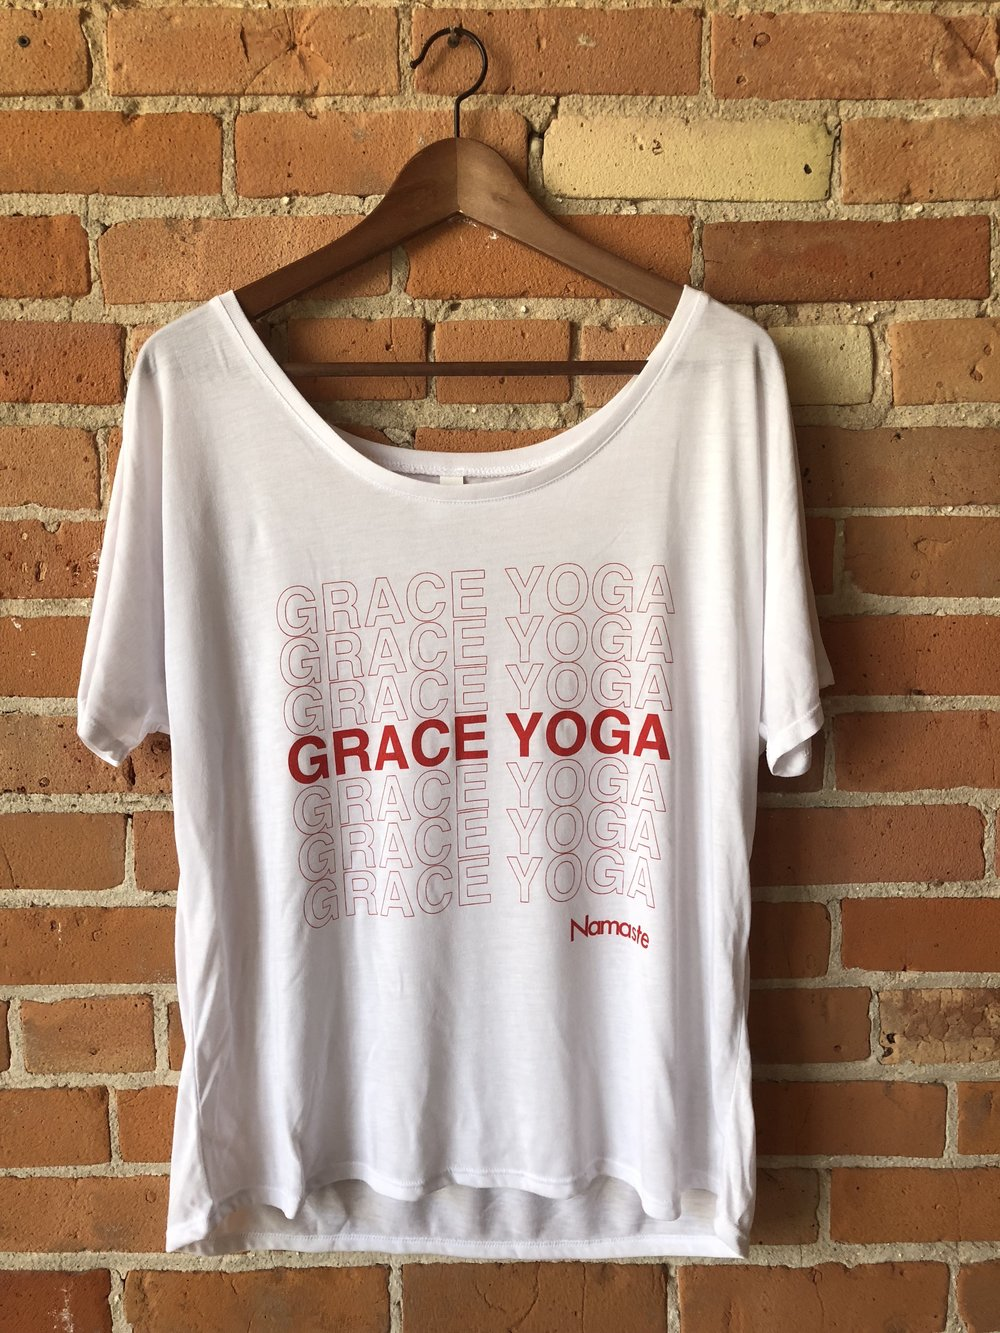 - Grace Yoga Plastic Bag Boat- Neck T-Shirt$18